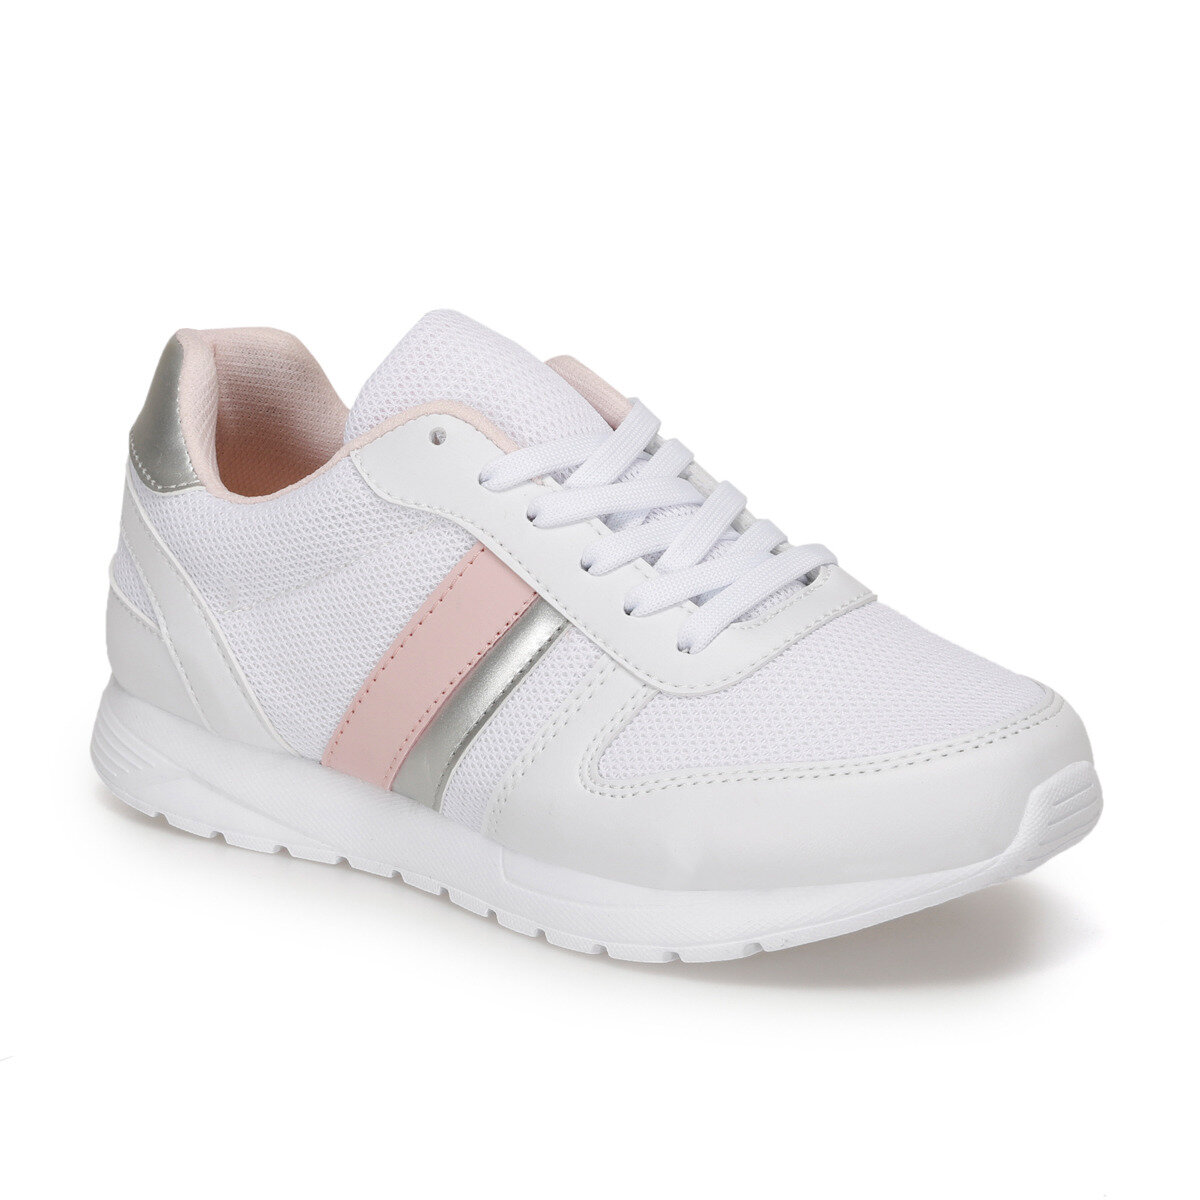 FLO DIANA W White Women 'S Sneaker Shoes Torex